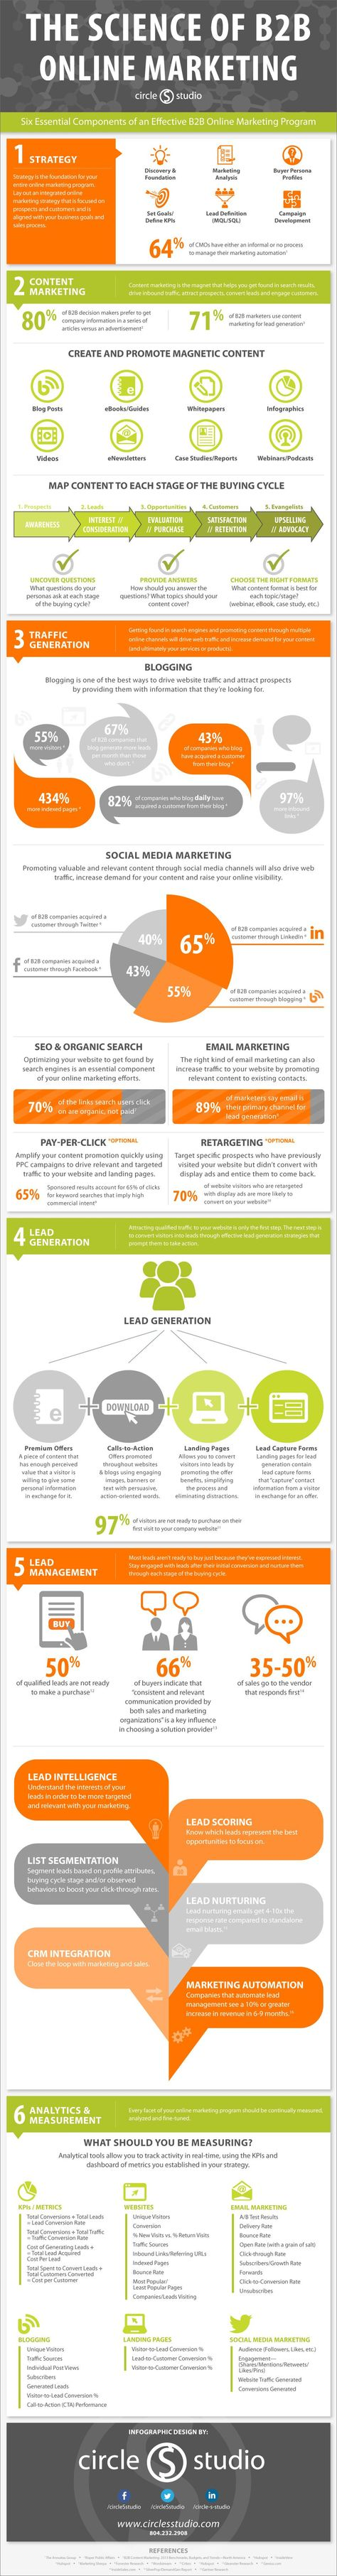 6 Tips For Creating a Better B2B Marketing Campaign (Infographic)